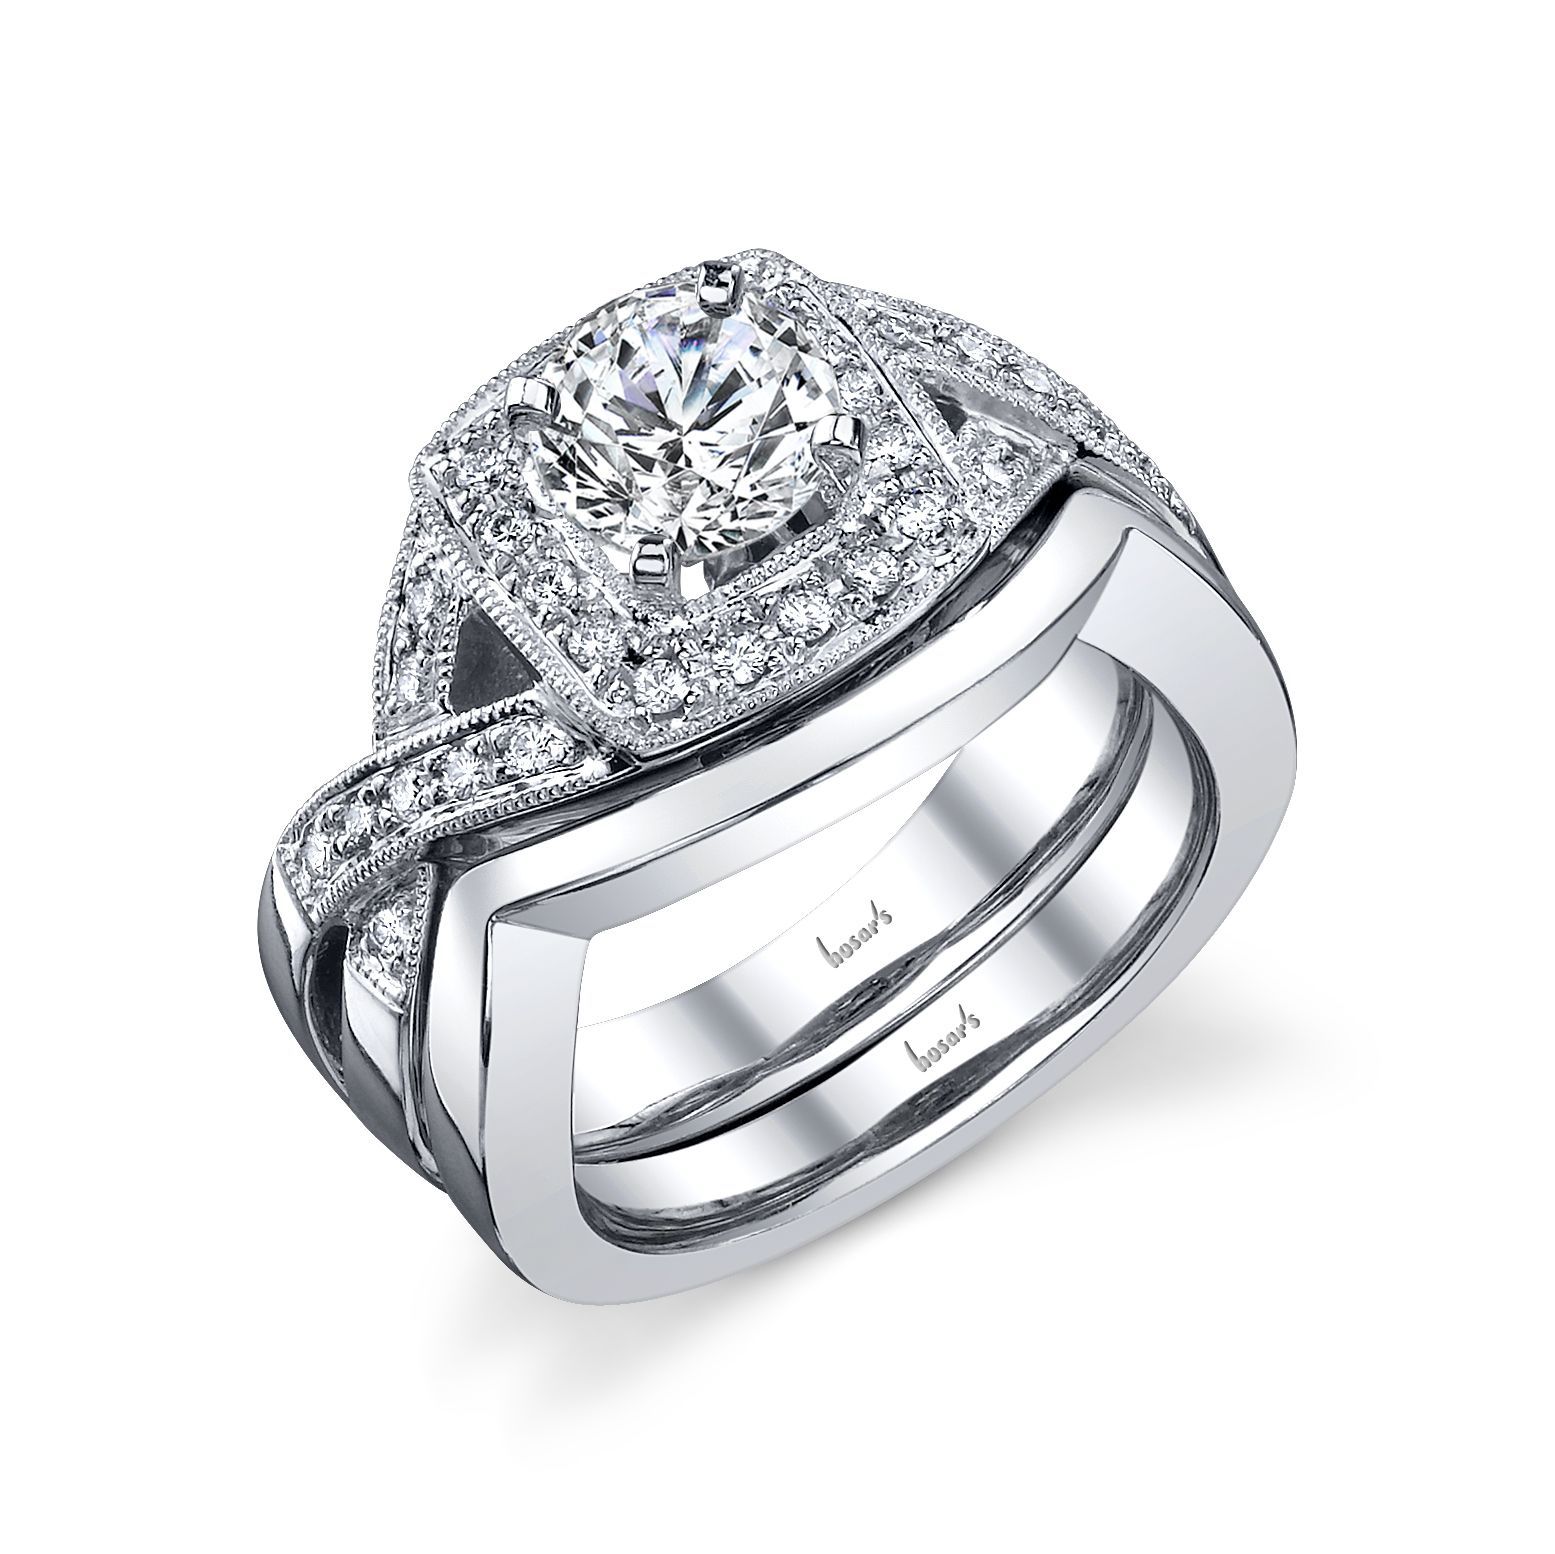 Square halo wide diamond Engagement ring with matching wedding